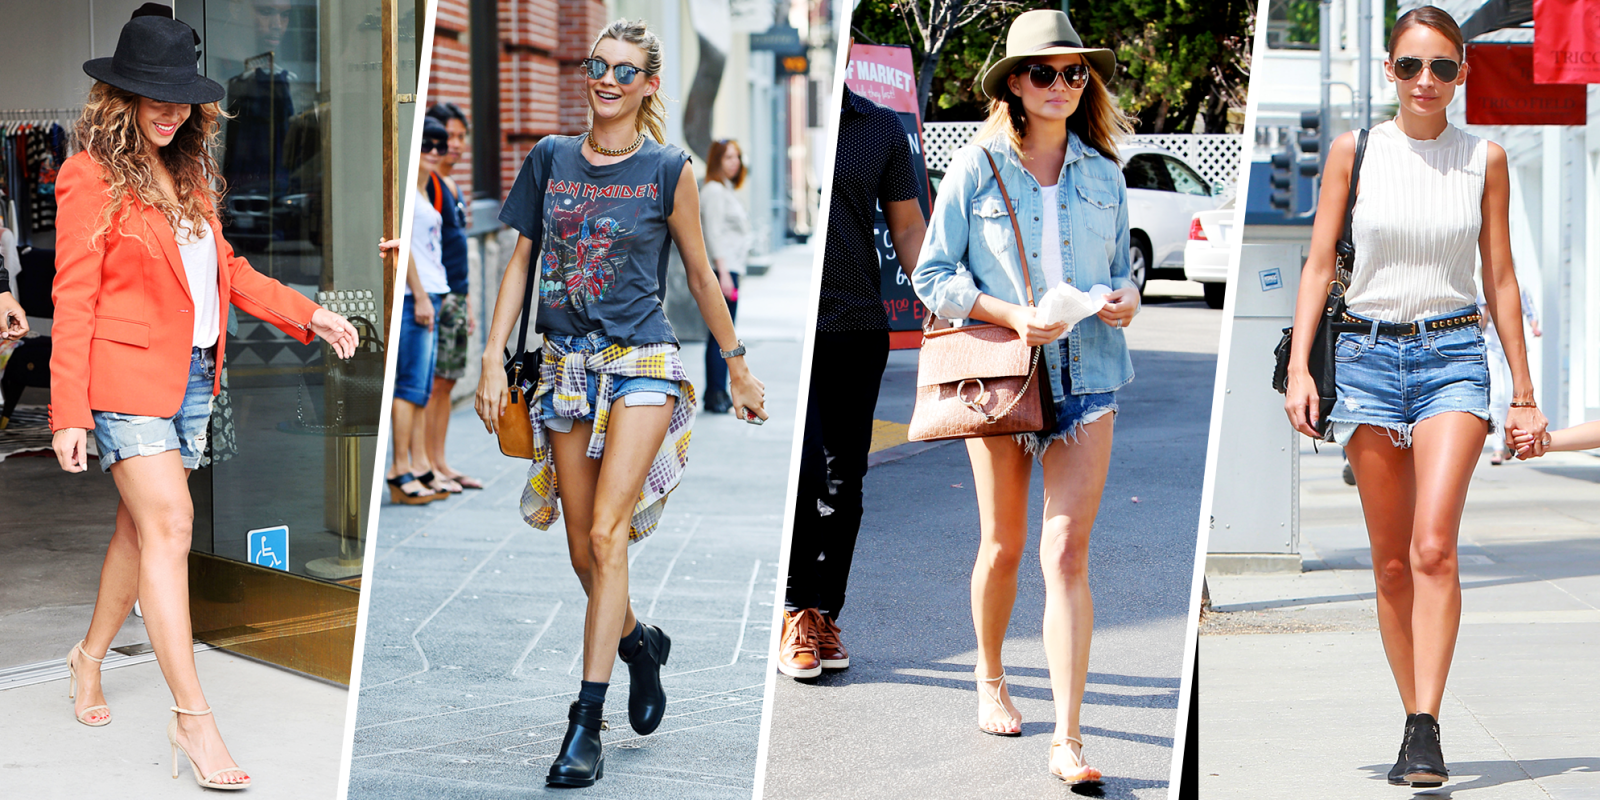 denim cut off shorts trend for summer 2015 how to wear